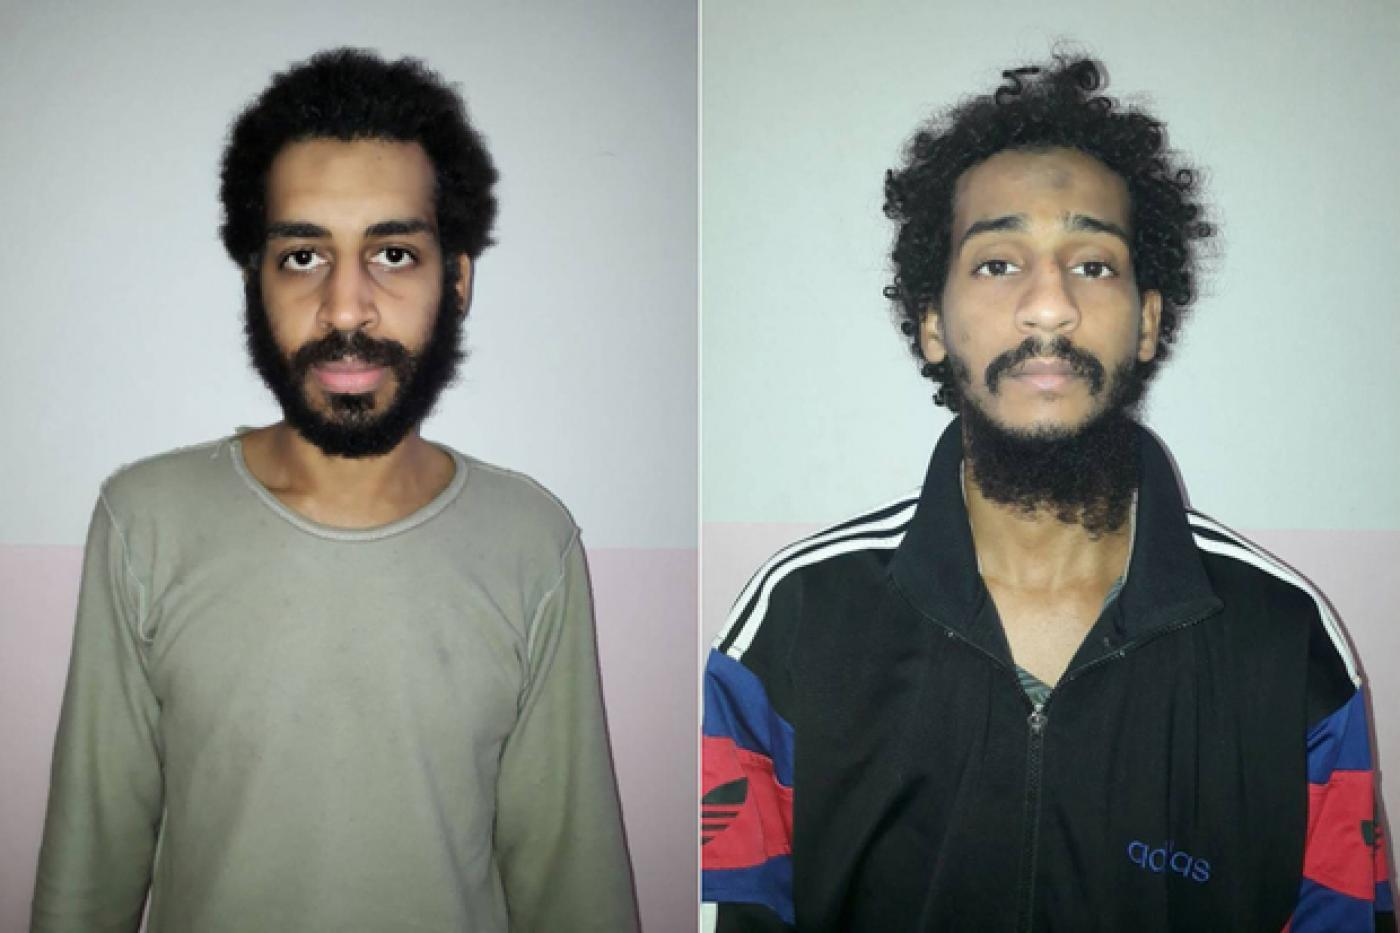 UK shares evidence with US in case of two Islamic State 'Beatles'